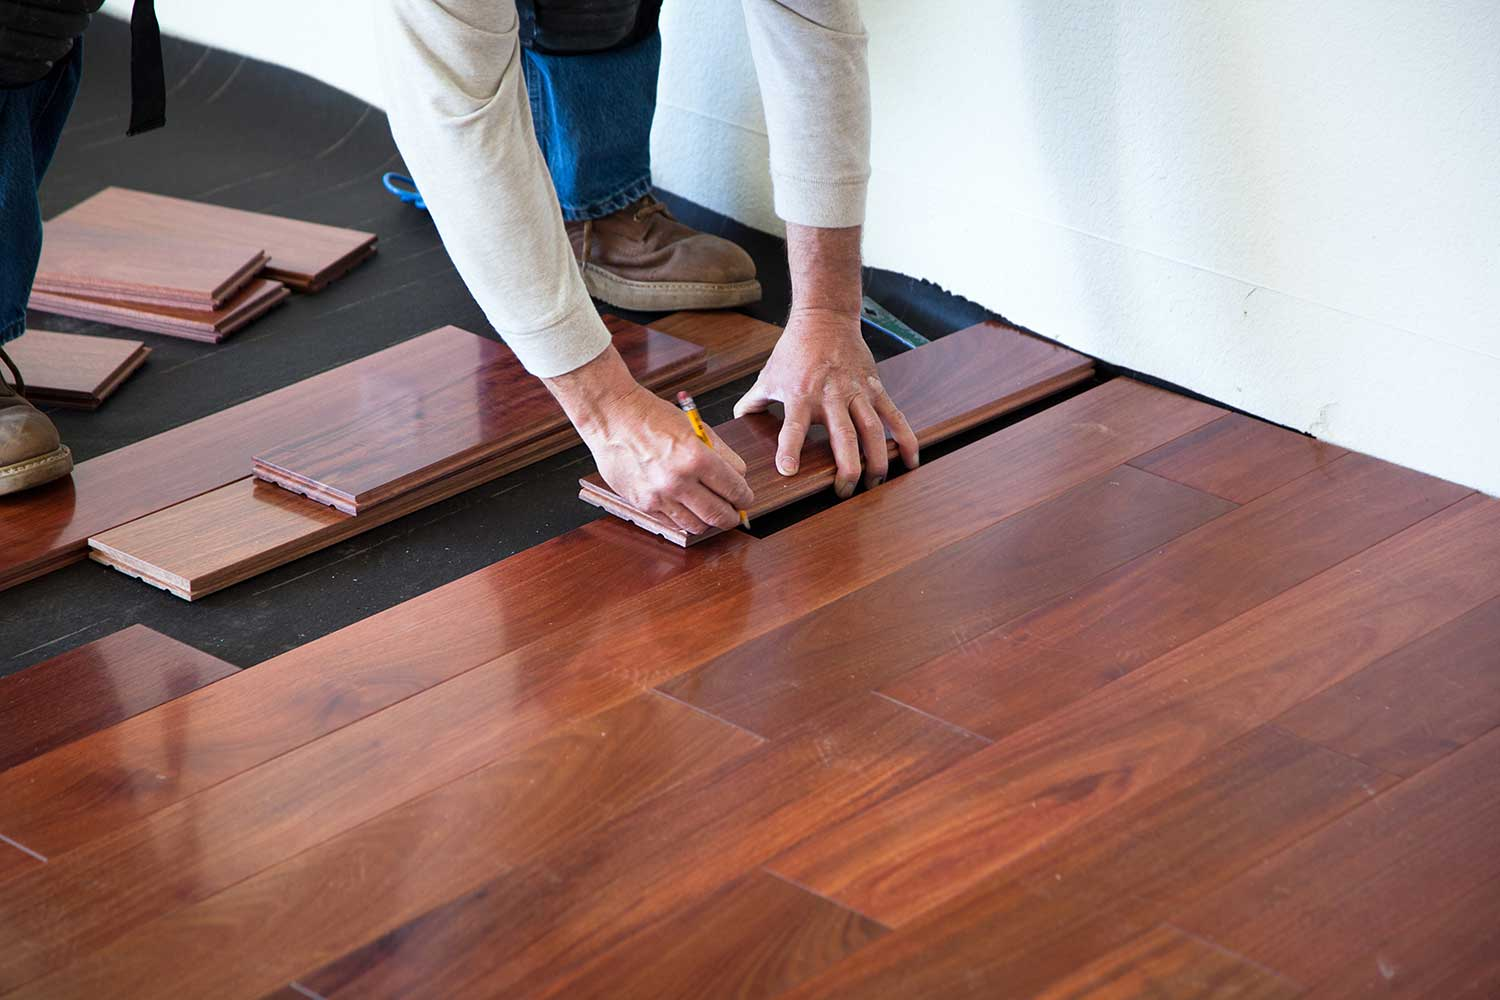 A worker installing hardwood floor in an American upscale home